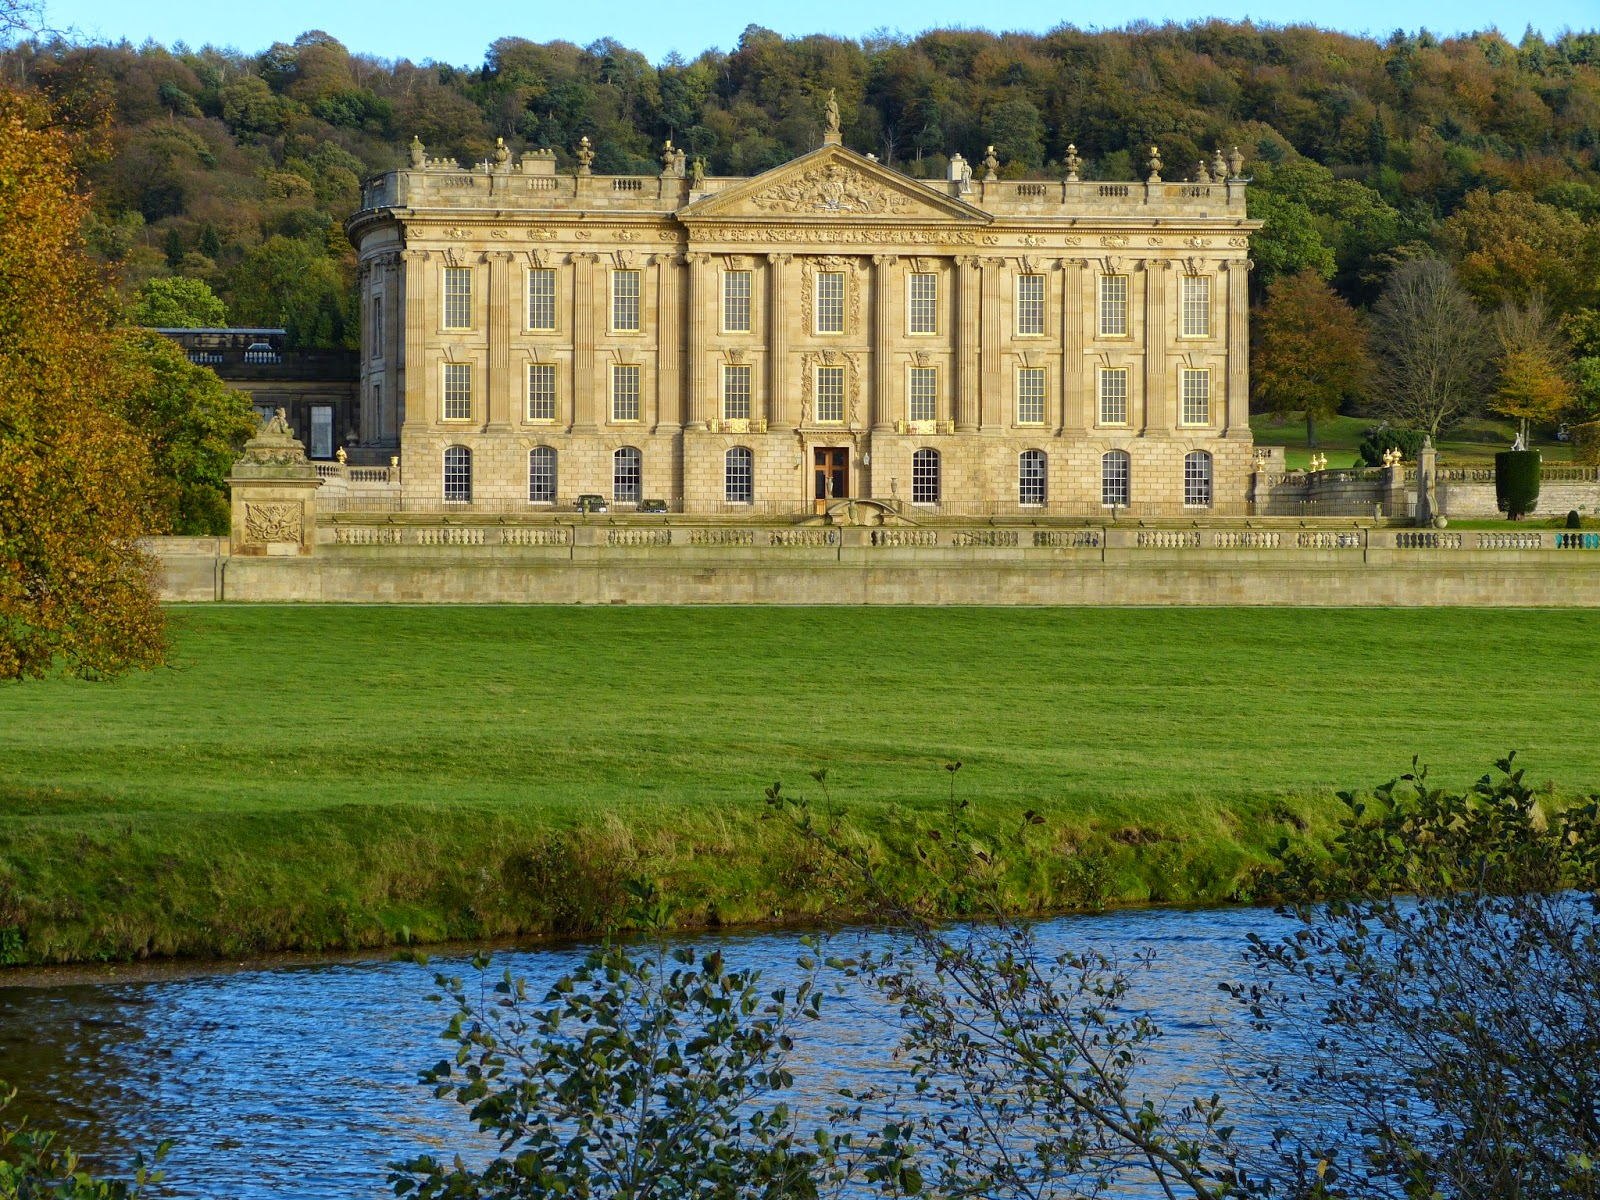 chatsworth house See 293 photos and 38 tips from 1936 visitors to chatsworth house walk round the gardens, visit the farm or have a tour of the house if none of.